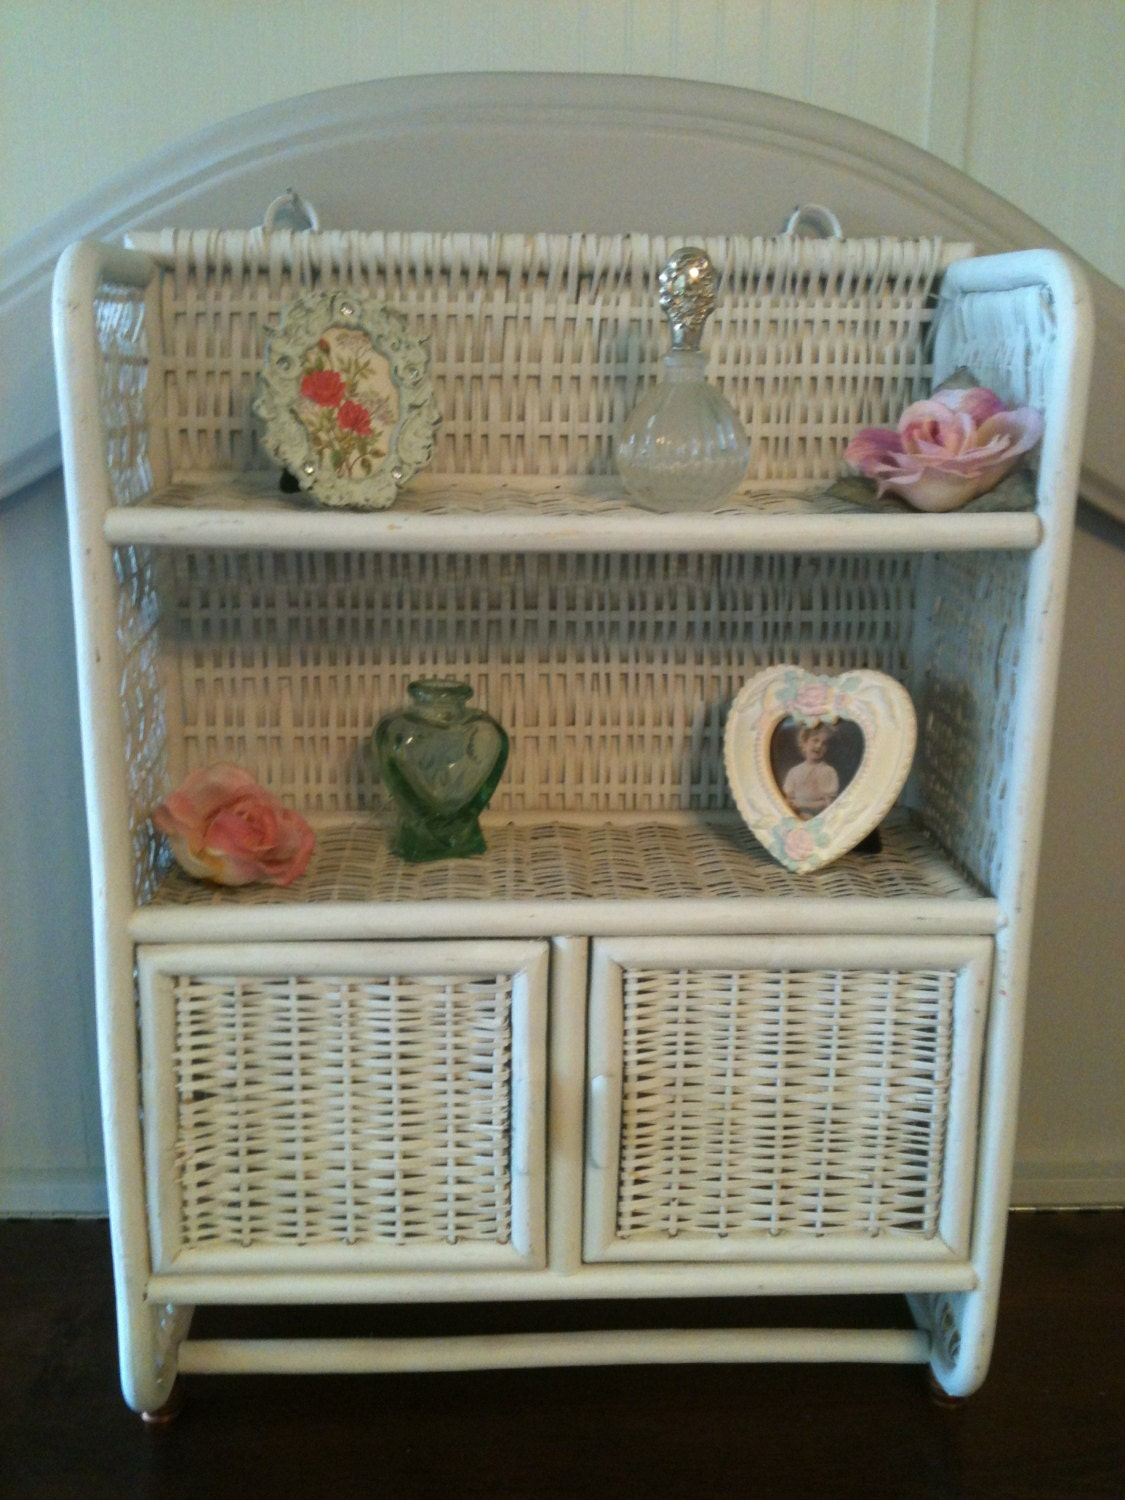 vintage white wicker bathroom medicine cabinet shelf with